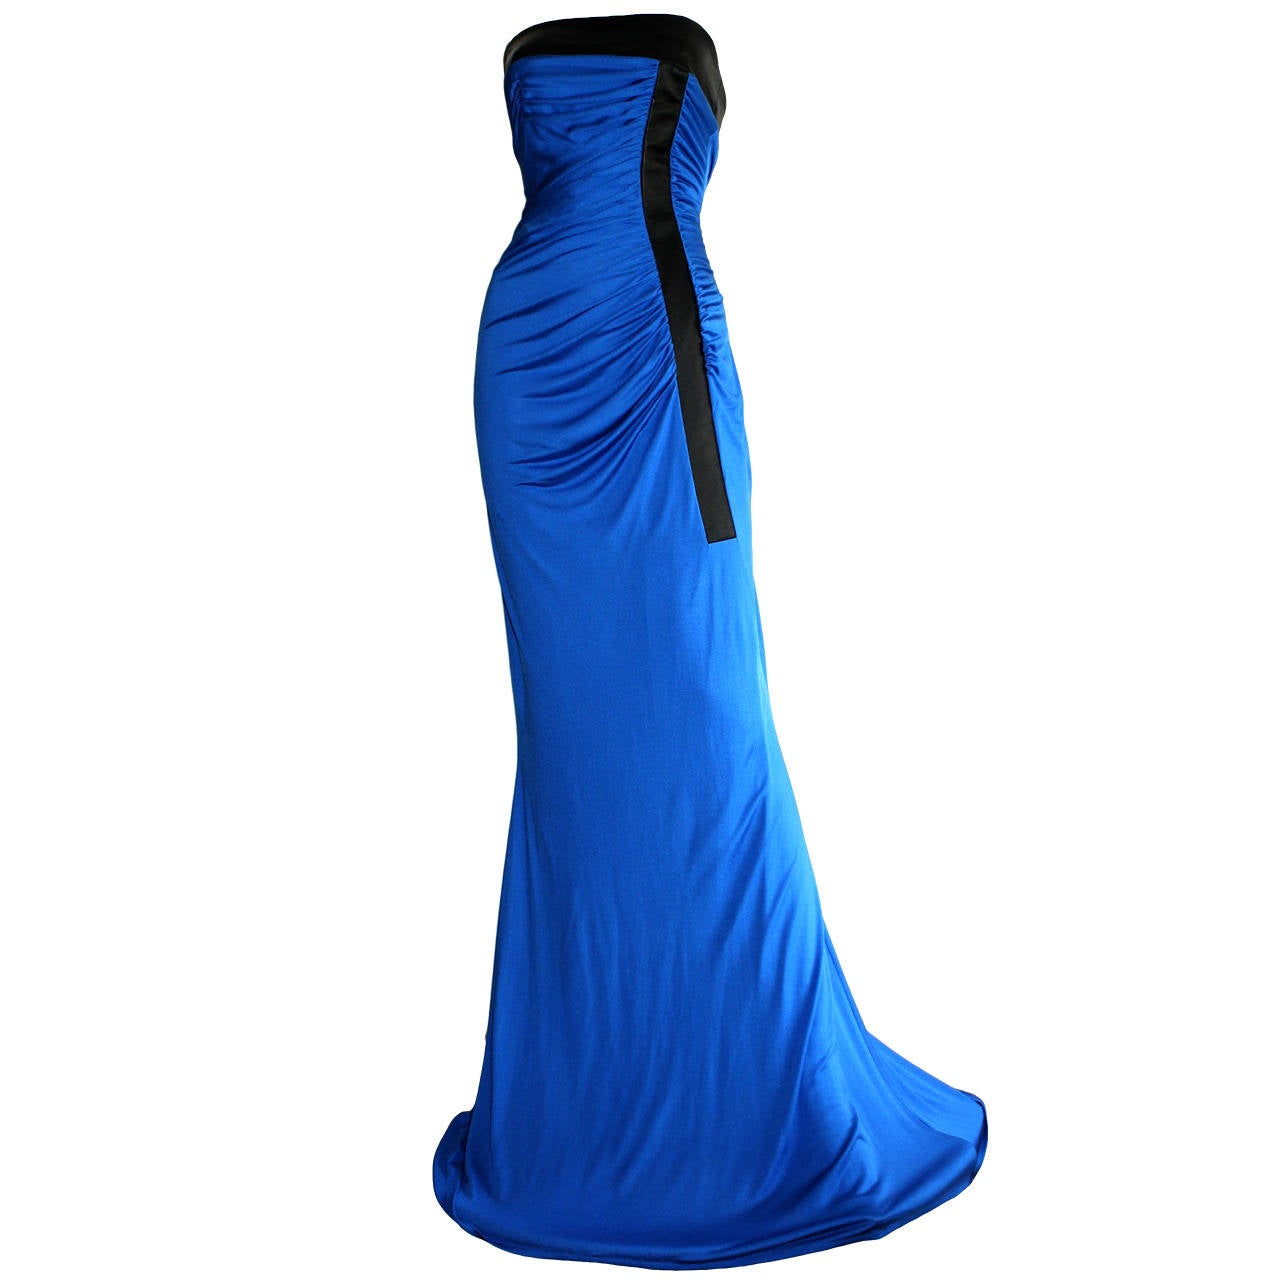 Ivana Trump's Lloyd Klein Couture Blue Silk Jersey & Black Leather Grecian Gown For Sale